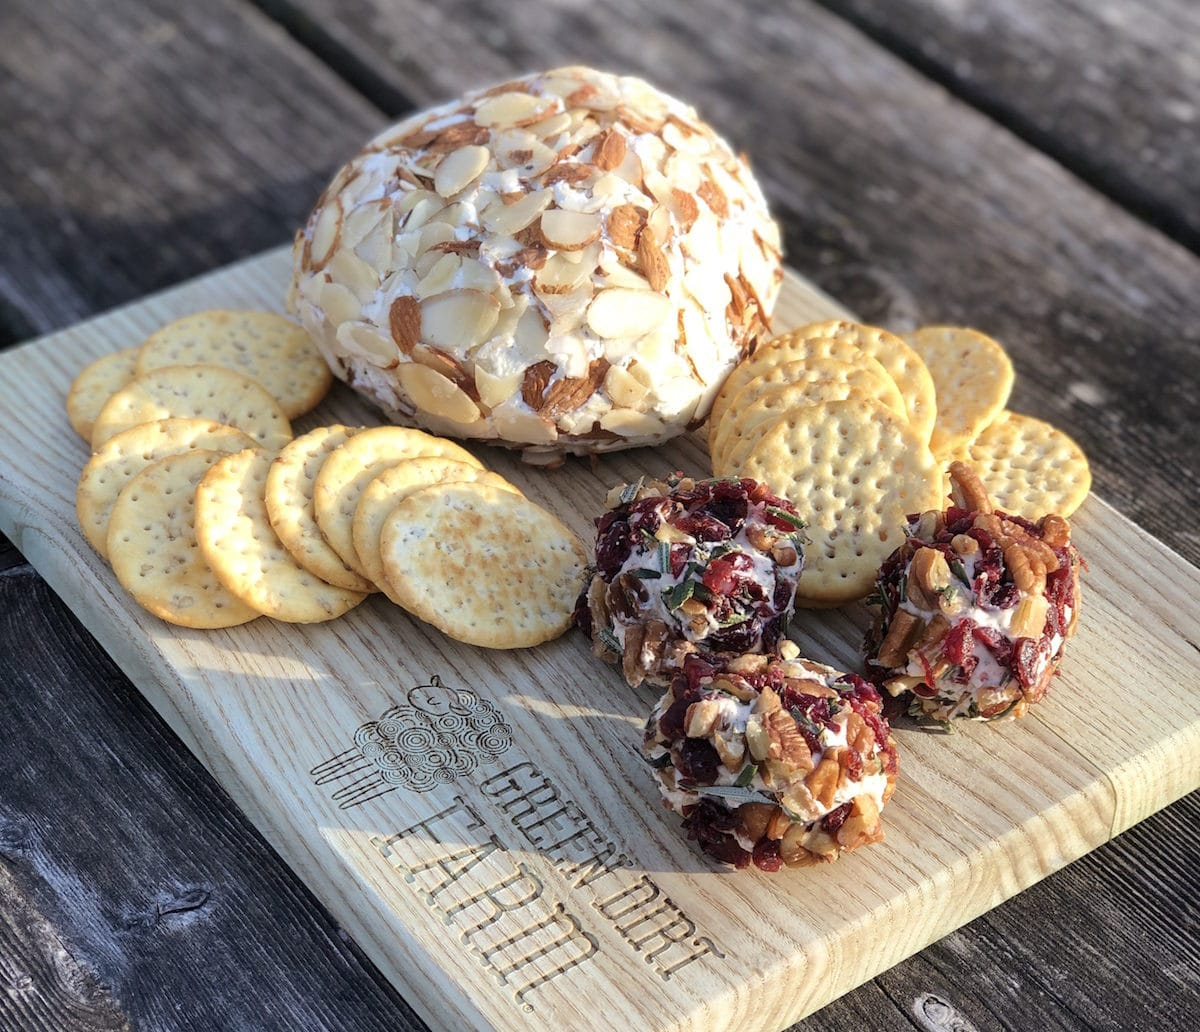 Use Green Dirt Farm's fresh sheep cheese for this sweet and savory cheese ball recipe.